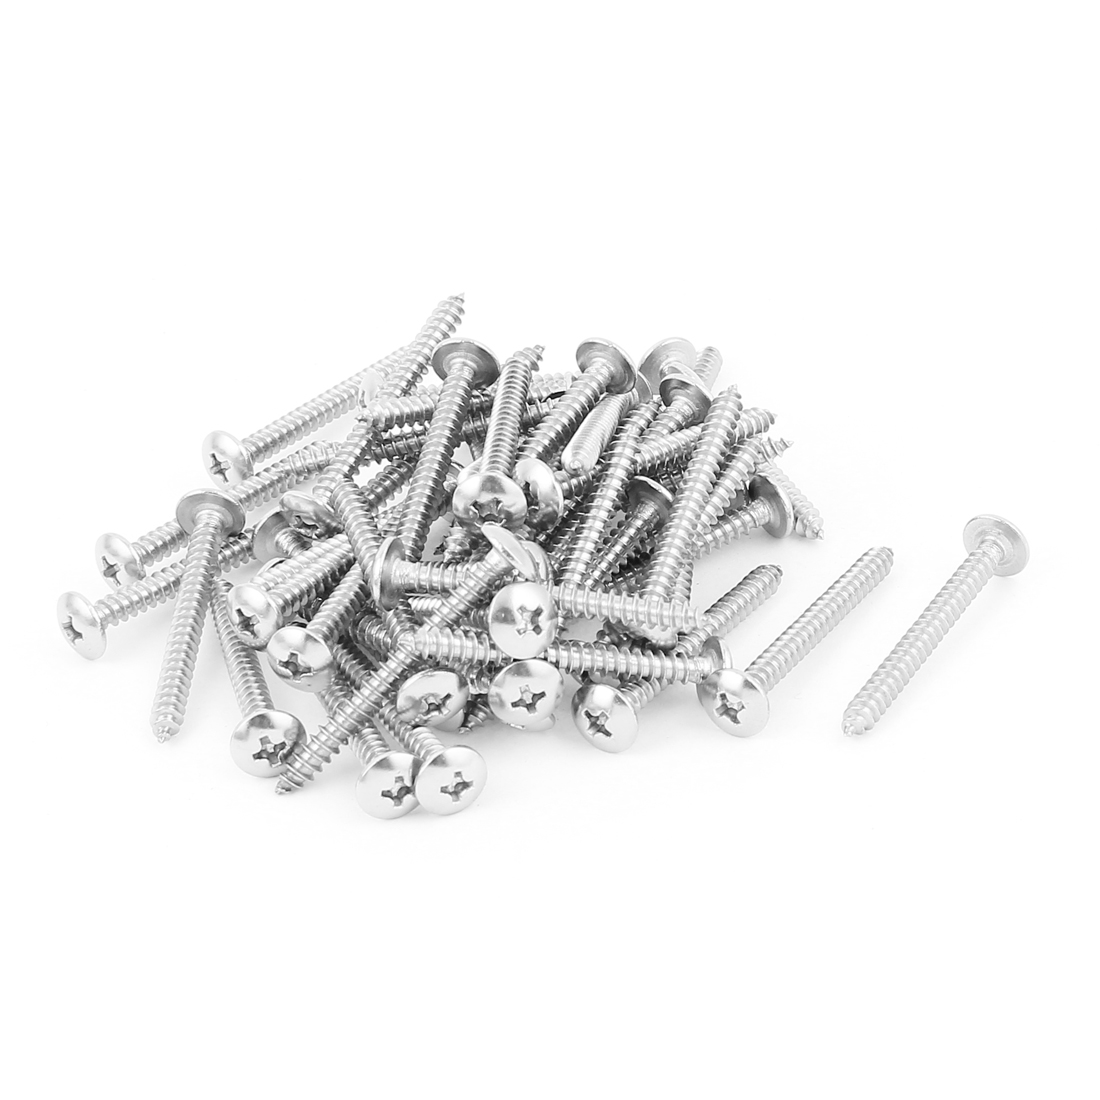 3.9mm x 40mm Stainless Steel Phillips Truss Head Self Tapping Screw Fasteners Silver Tone 50 Pcs